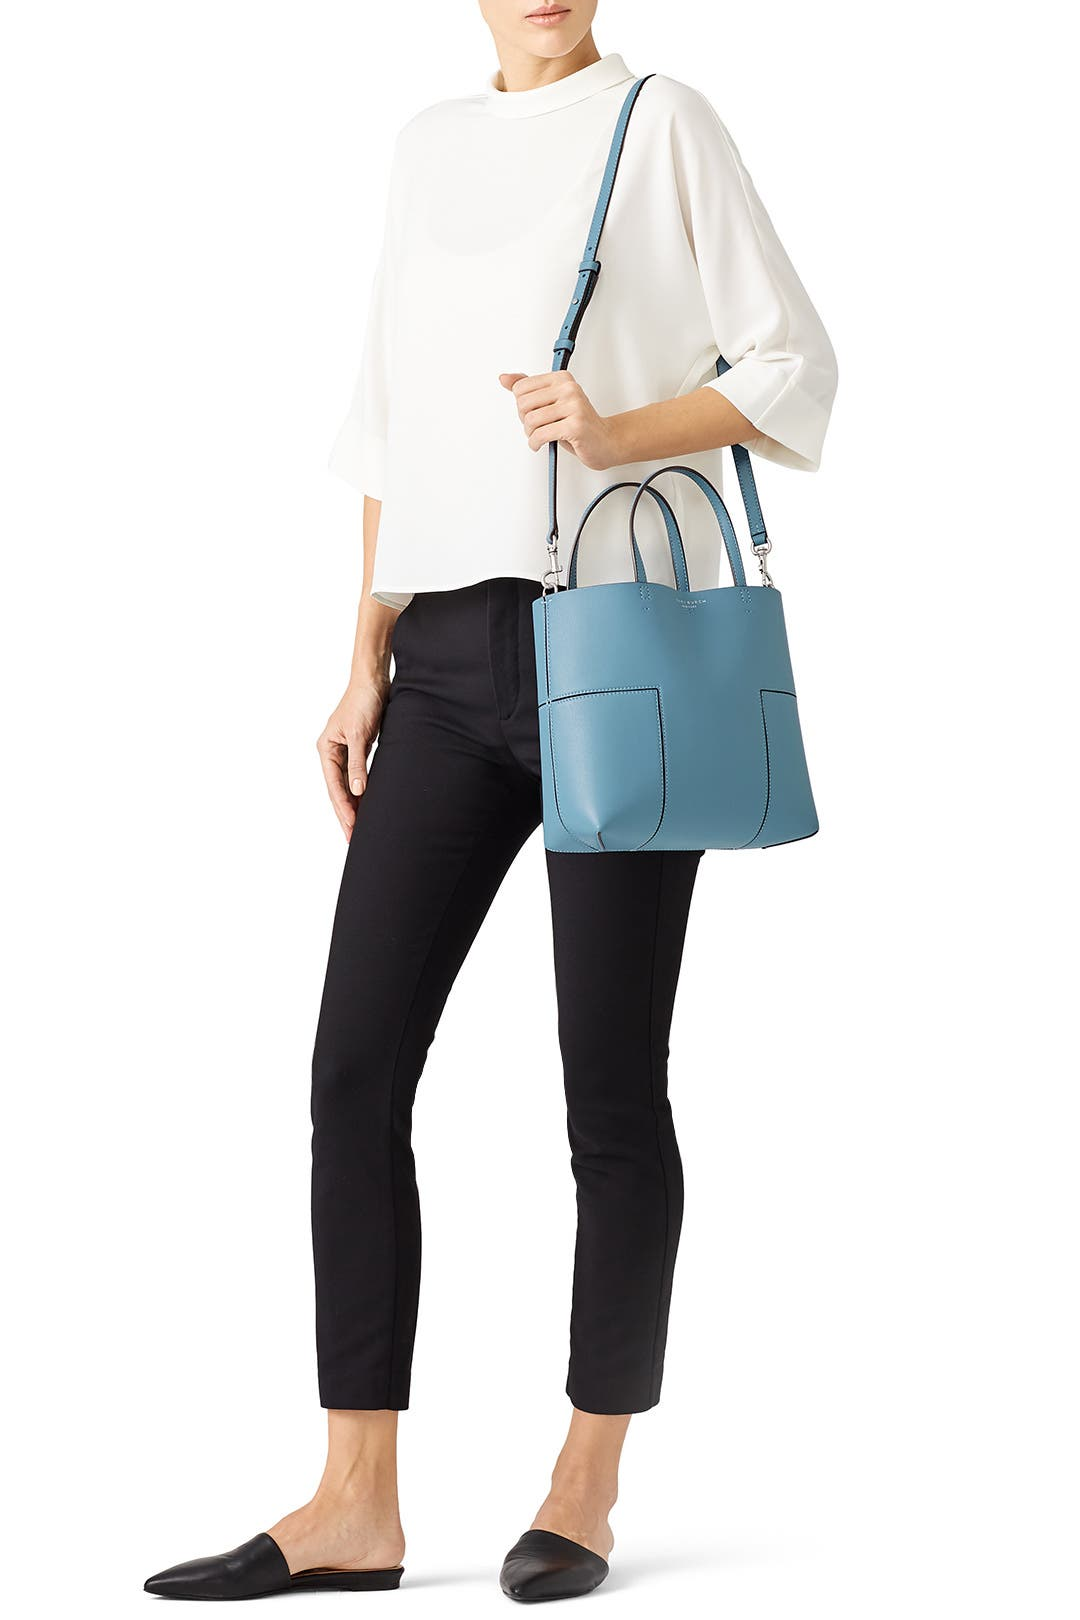 ad28ca1ef30 Blue Block-T Mini Tote by Tory Burch Accessories for $59.70 | Rent the  Runway